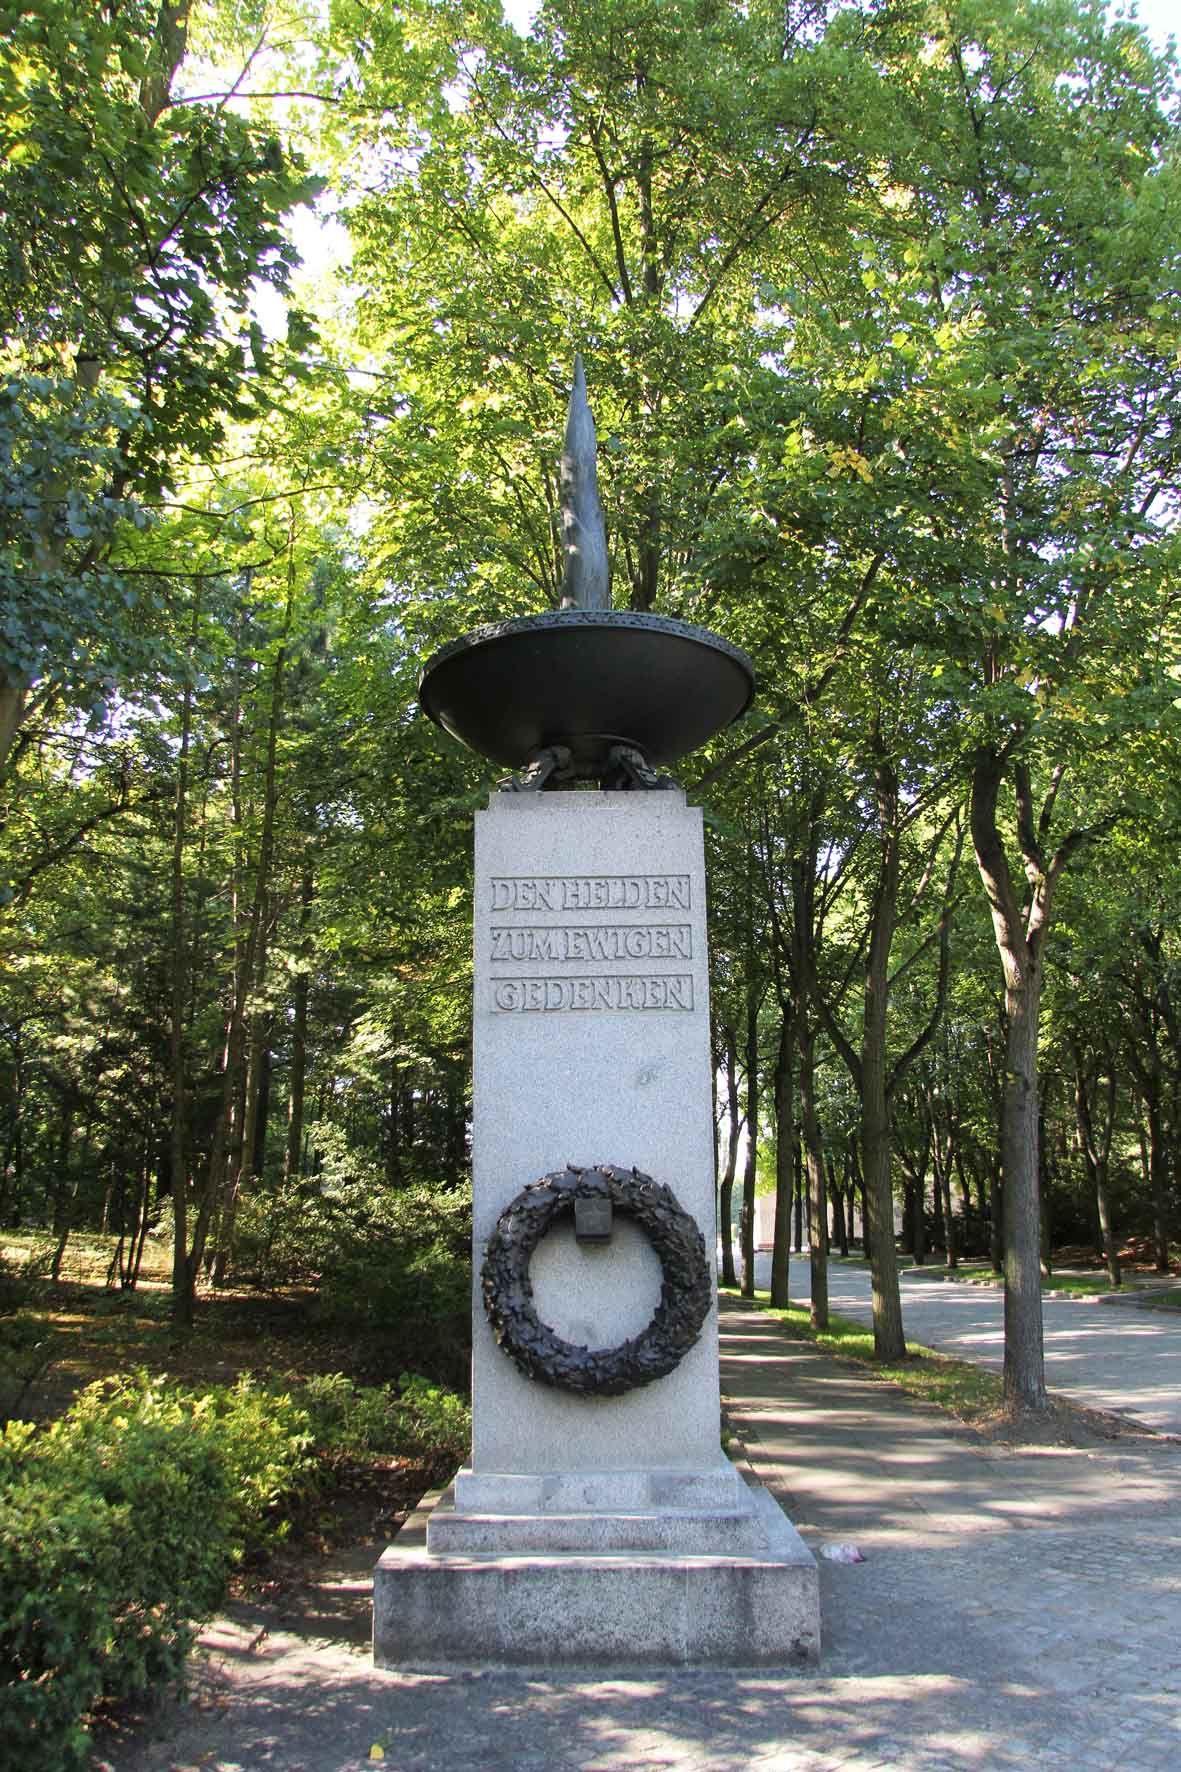 Pillar at Entrance to Soviet Memorial in Schönholzer Heide in Berlin